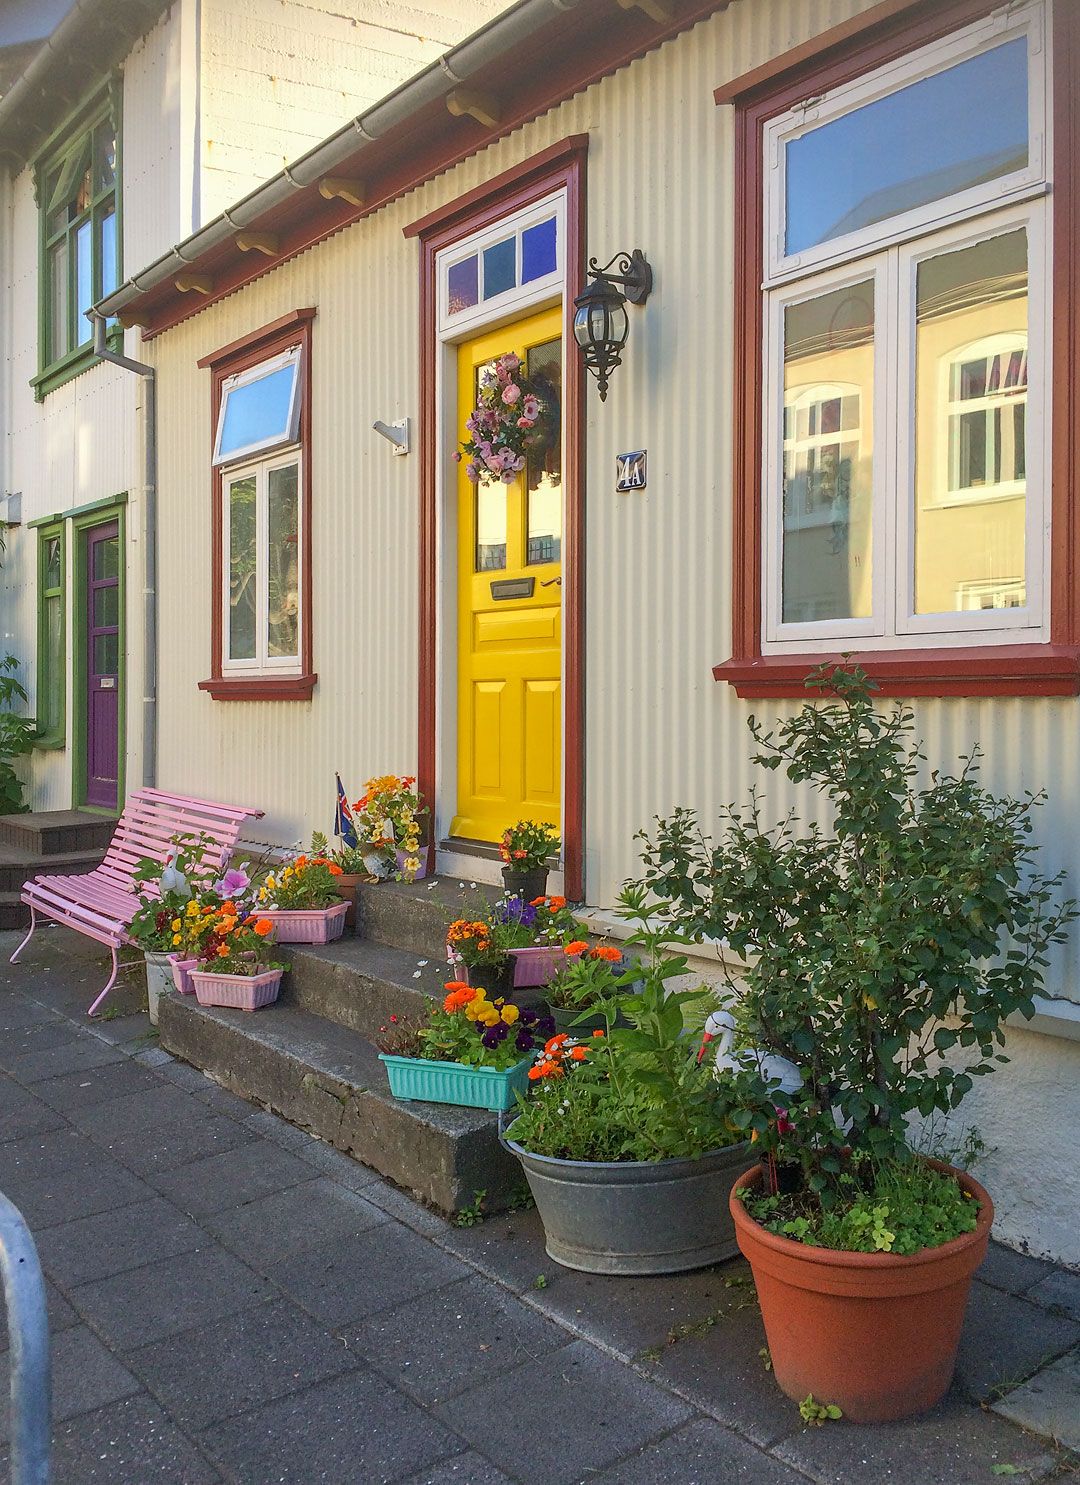 The cutest little house in Reykjavik